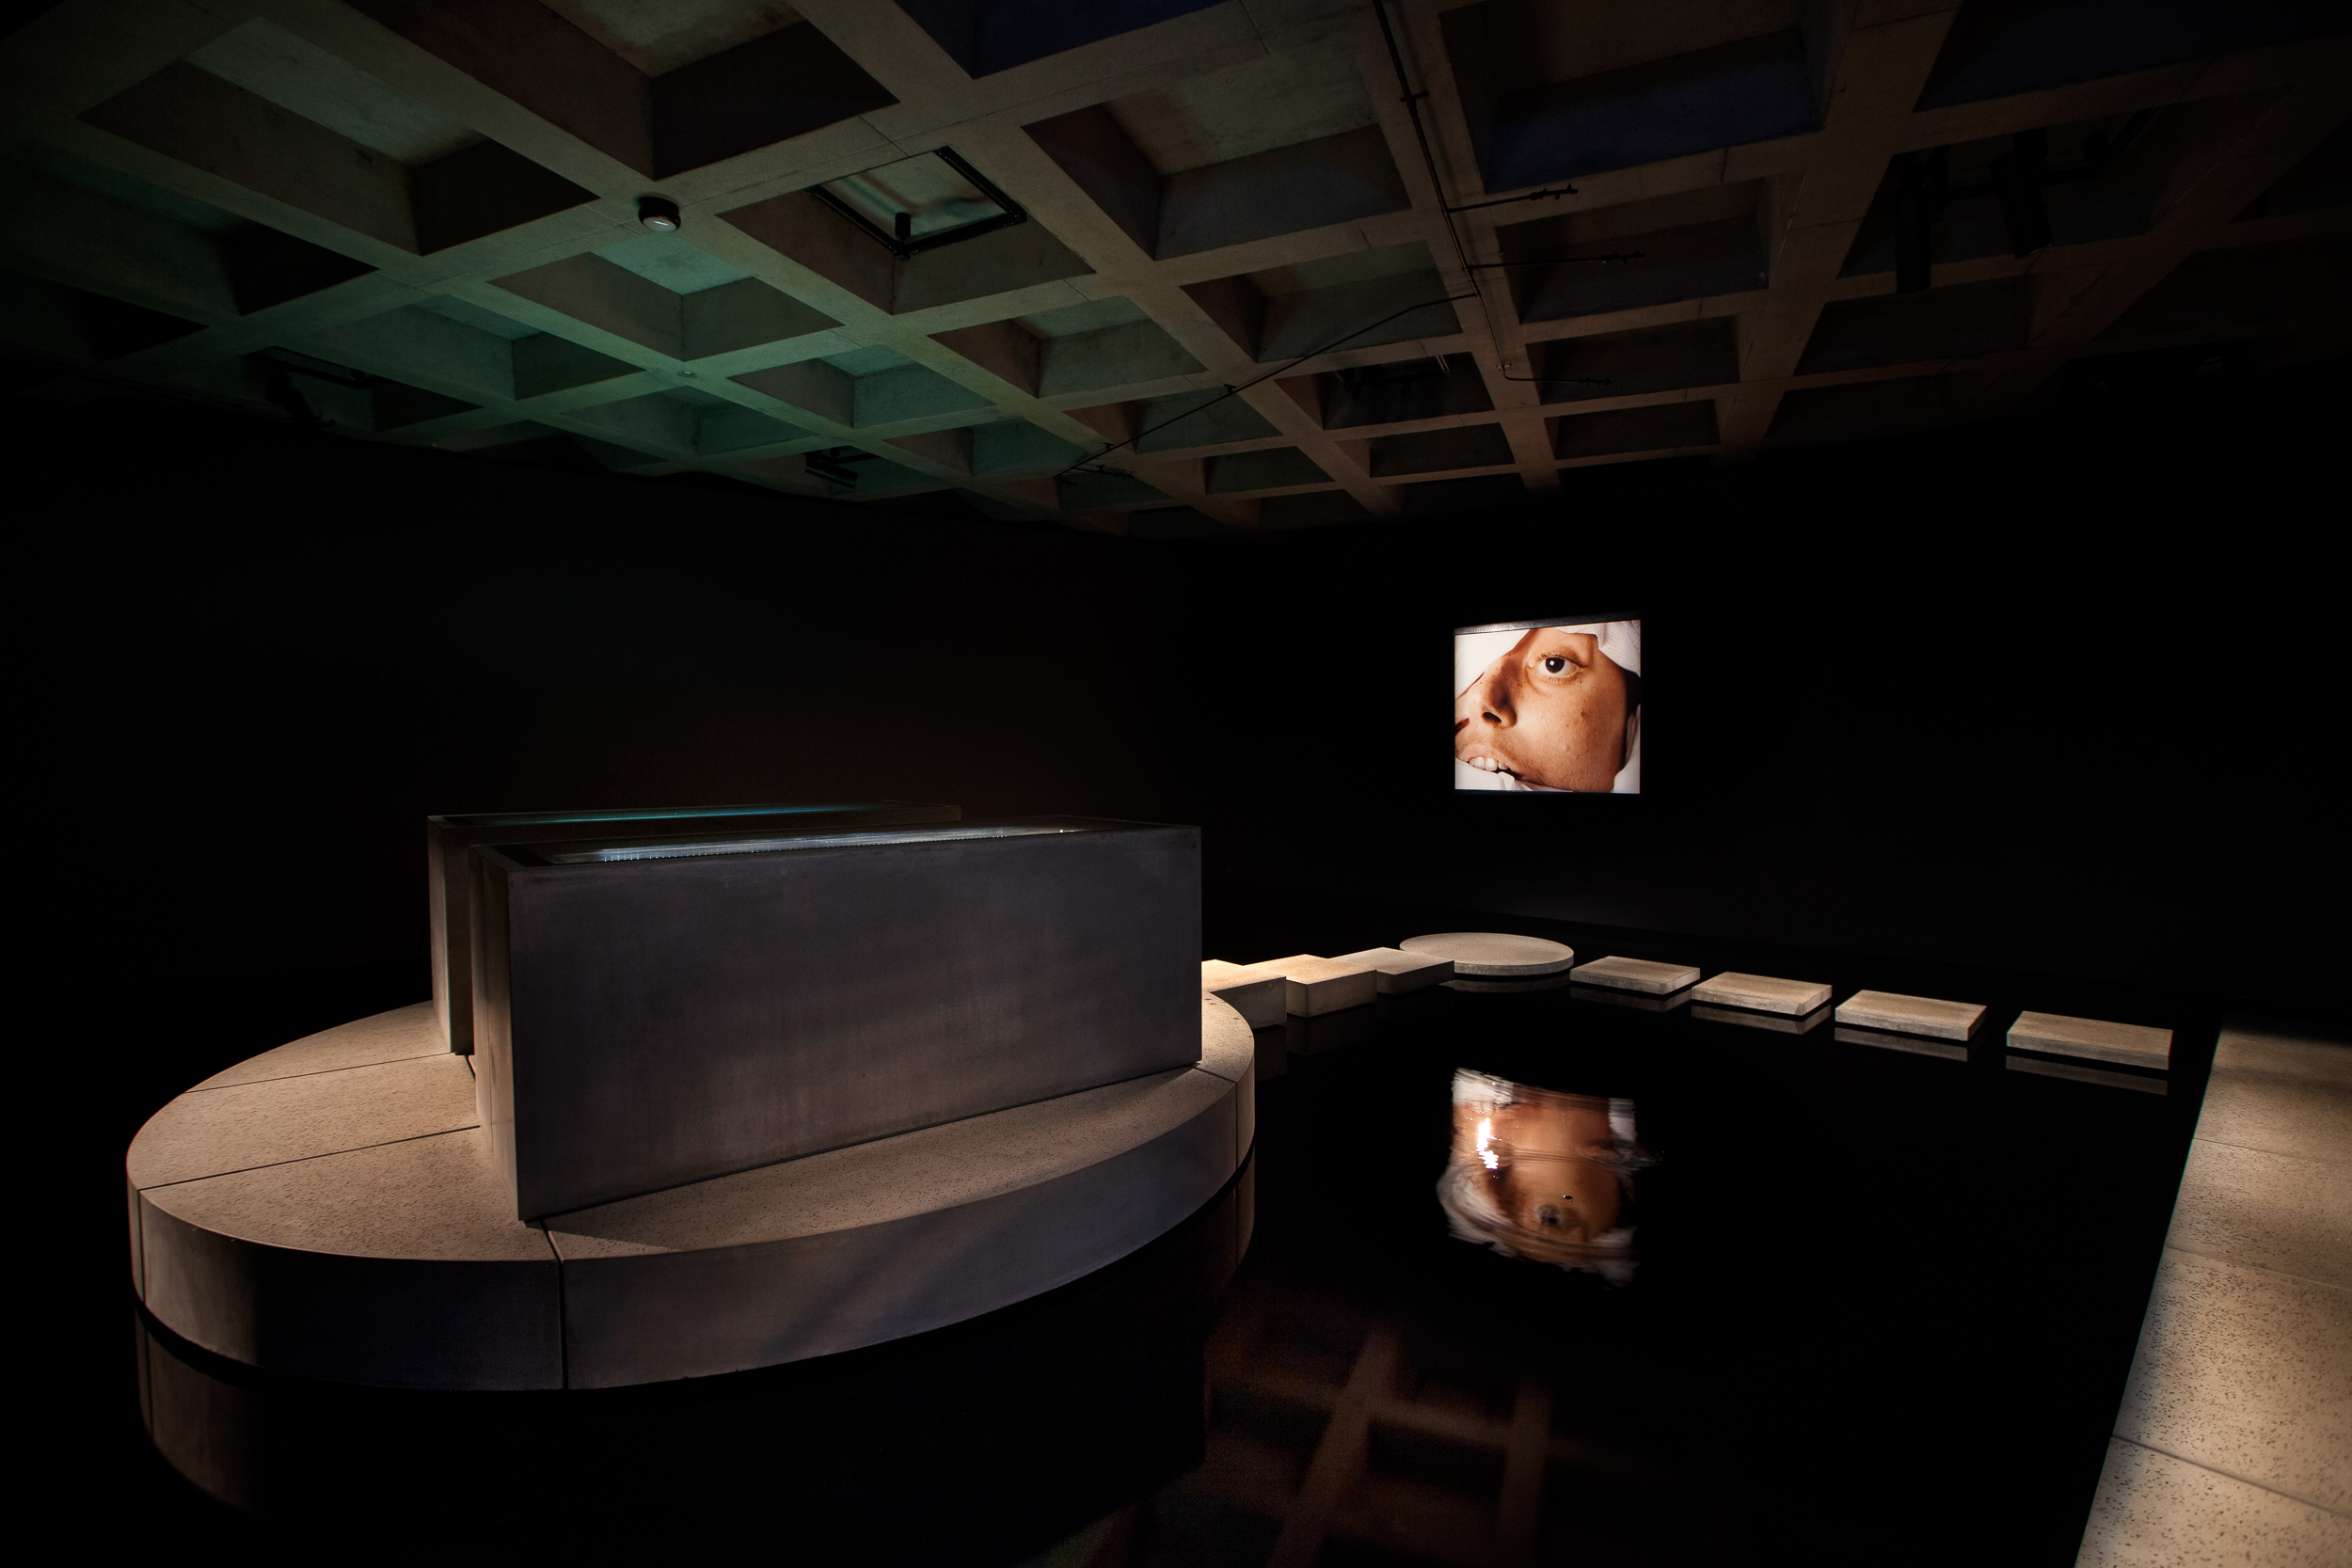 Left: Mummy and Coffin of Pausiris 100 BCE to 100 CE  Human remains encased in stucco plaster with glass eyes, incised and painted decoration  Right wall: The Morgue (Blood Transfusion Resulting In Aids), 1992  Andres Serrano (Born 1950, New York, USA) Cibachrome photograph, edn 2/3